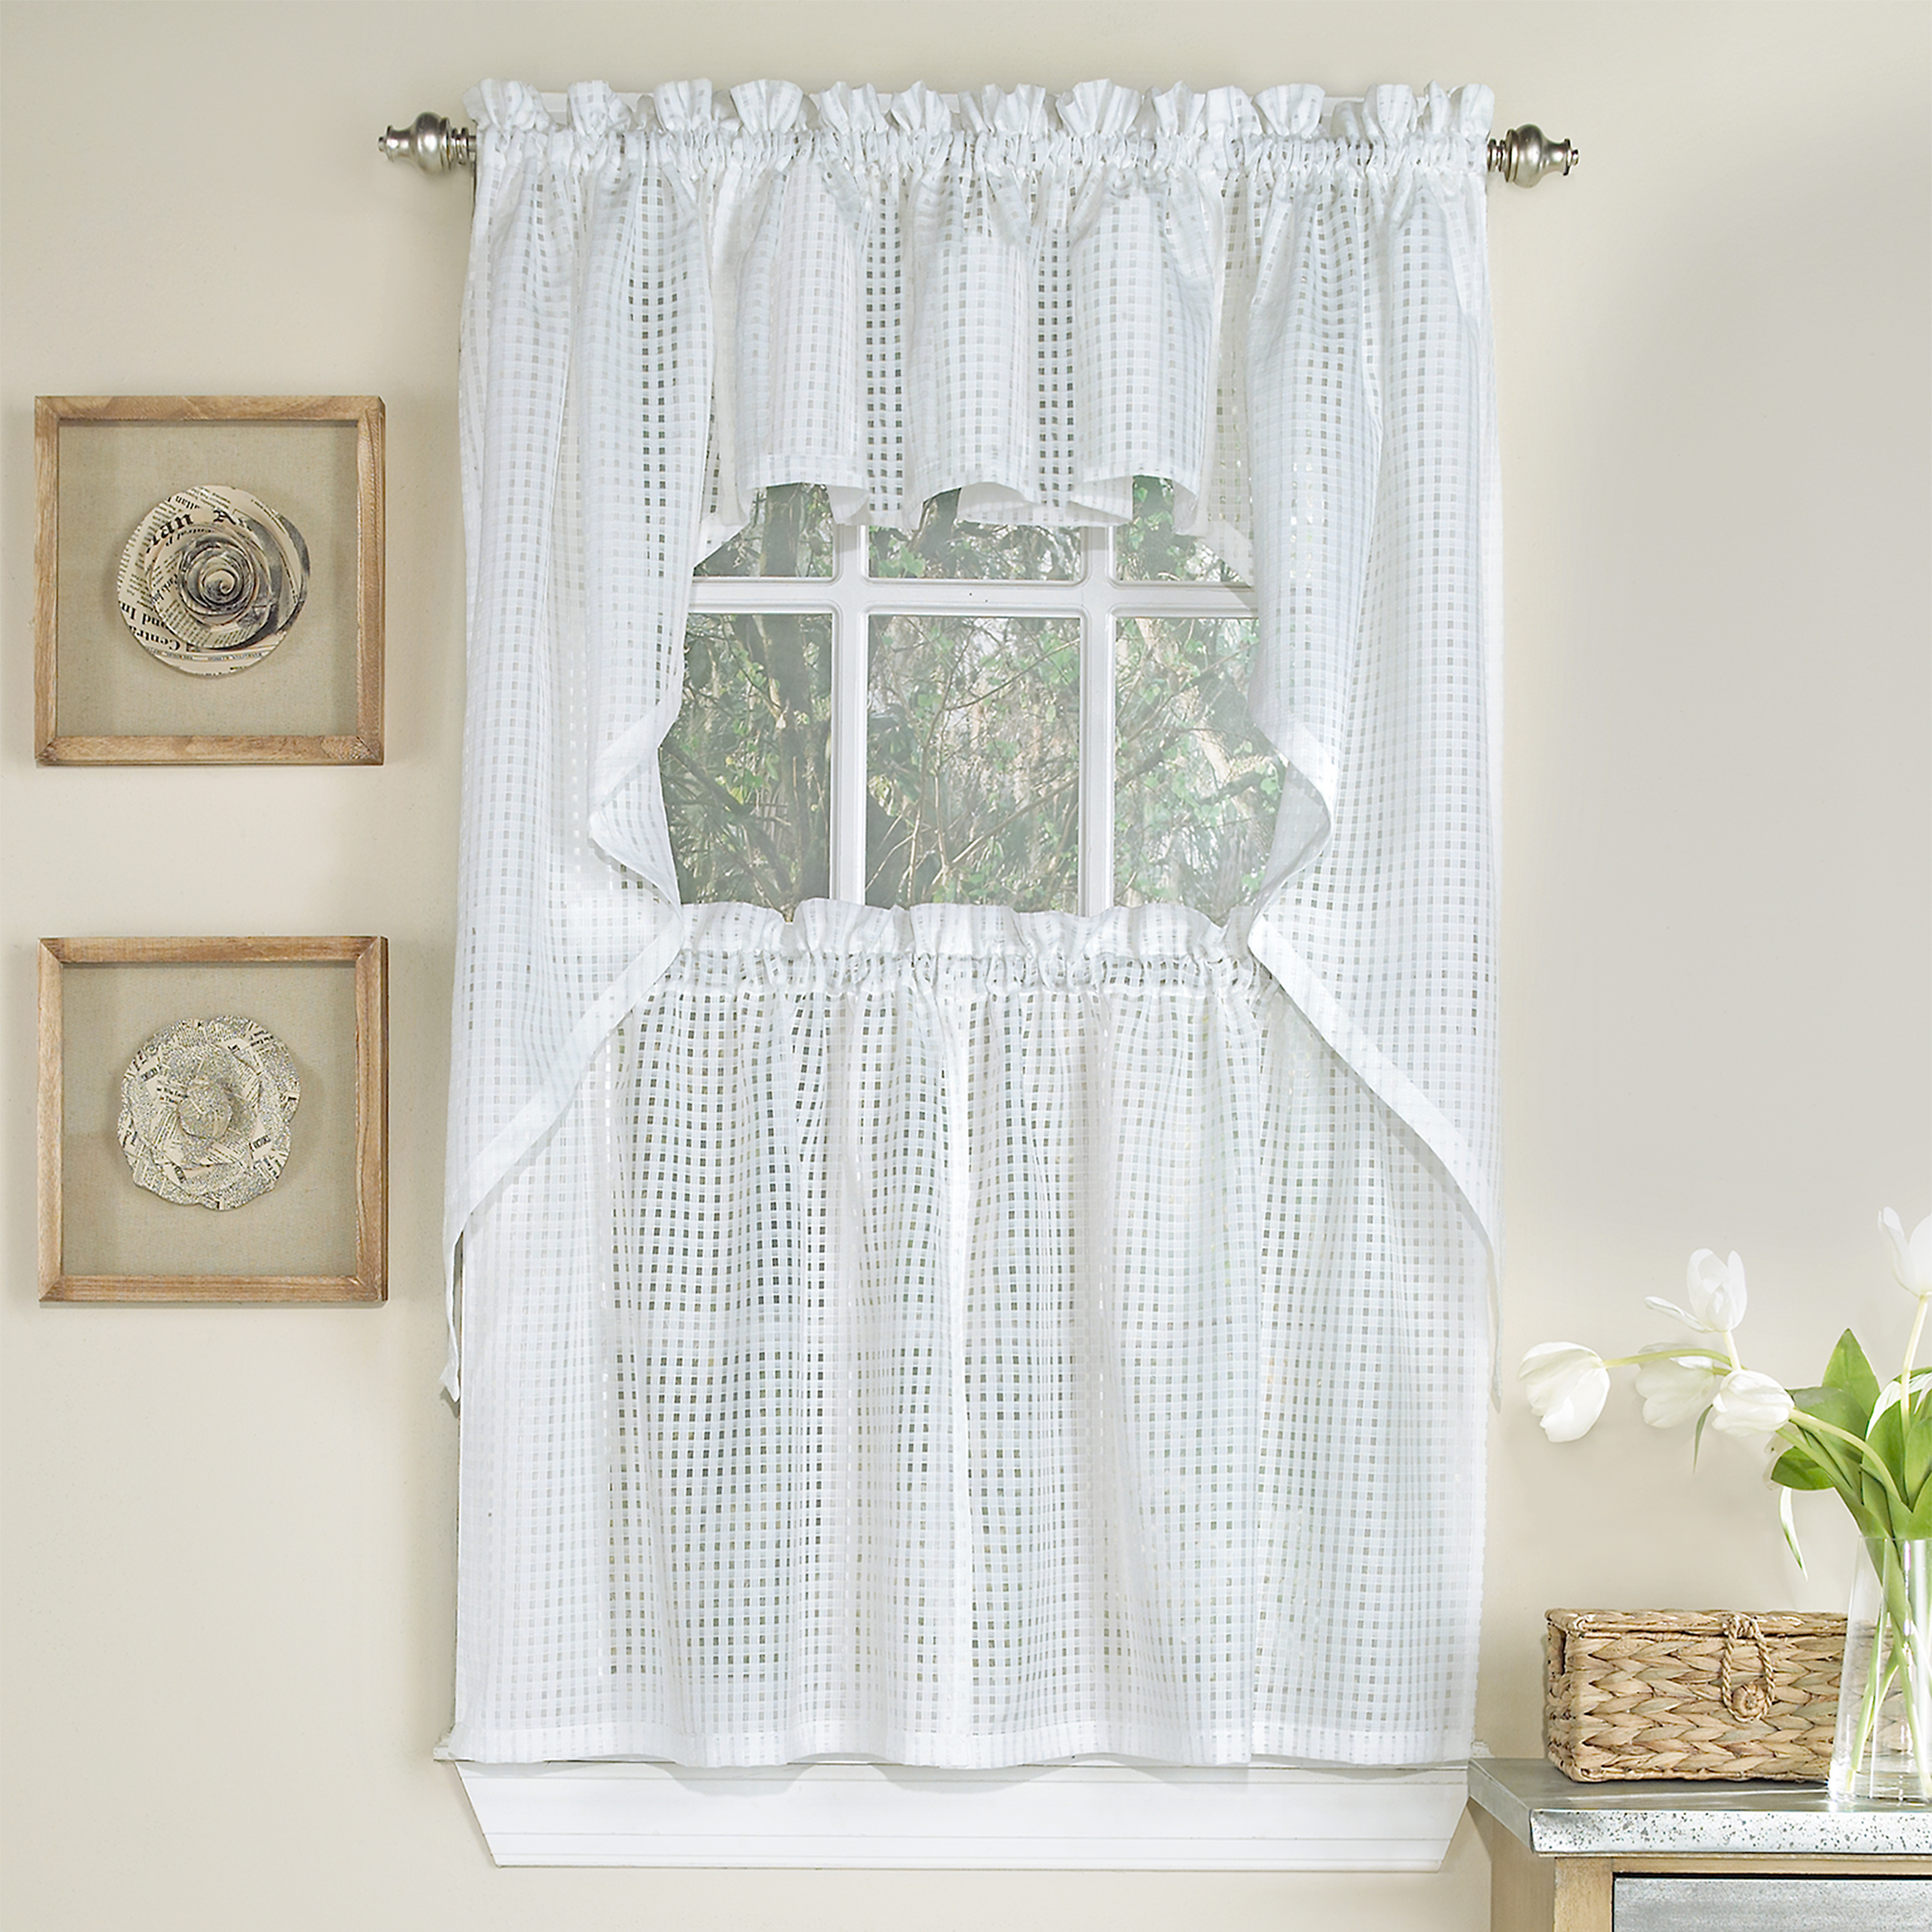 Details About Micro Check 2 Tone White Semi Sheer Window Curtain Tiers, Valance, Or Swag Pertaining To Semi Sheer Rod Pocket Kitchen Curtain Valance And Tiers Sets (View 6 of 20)